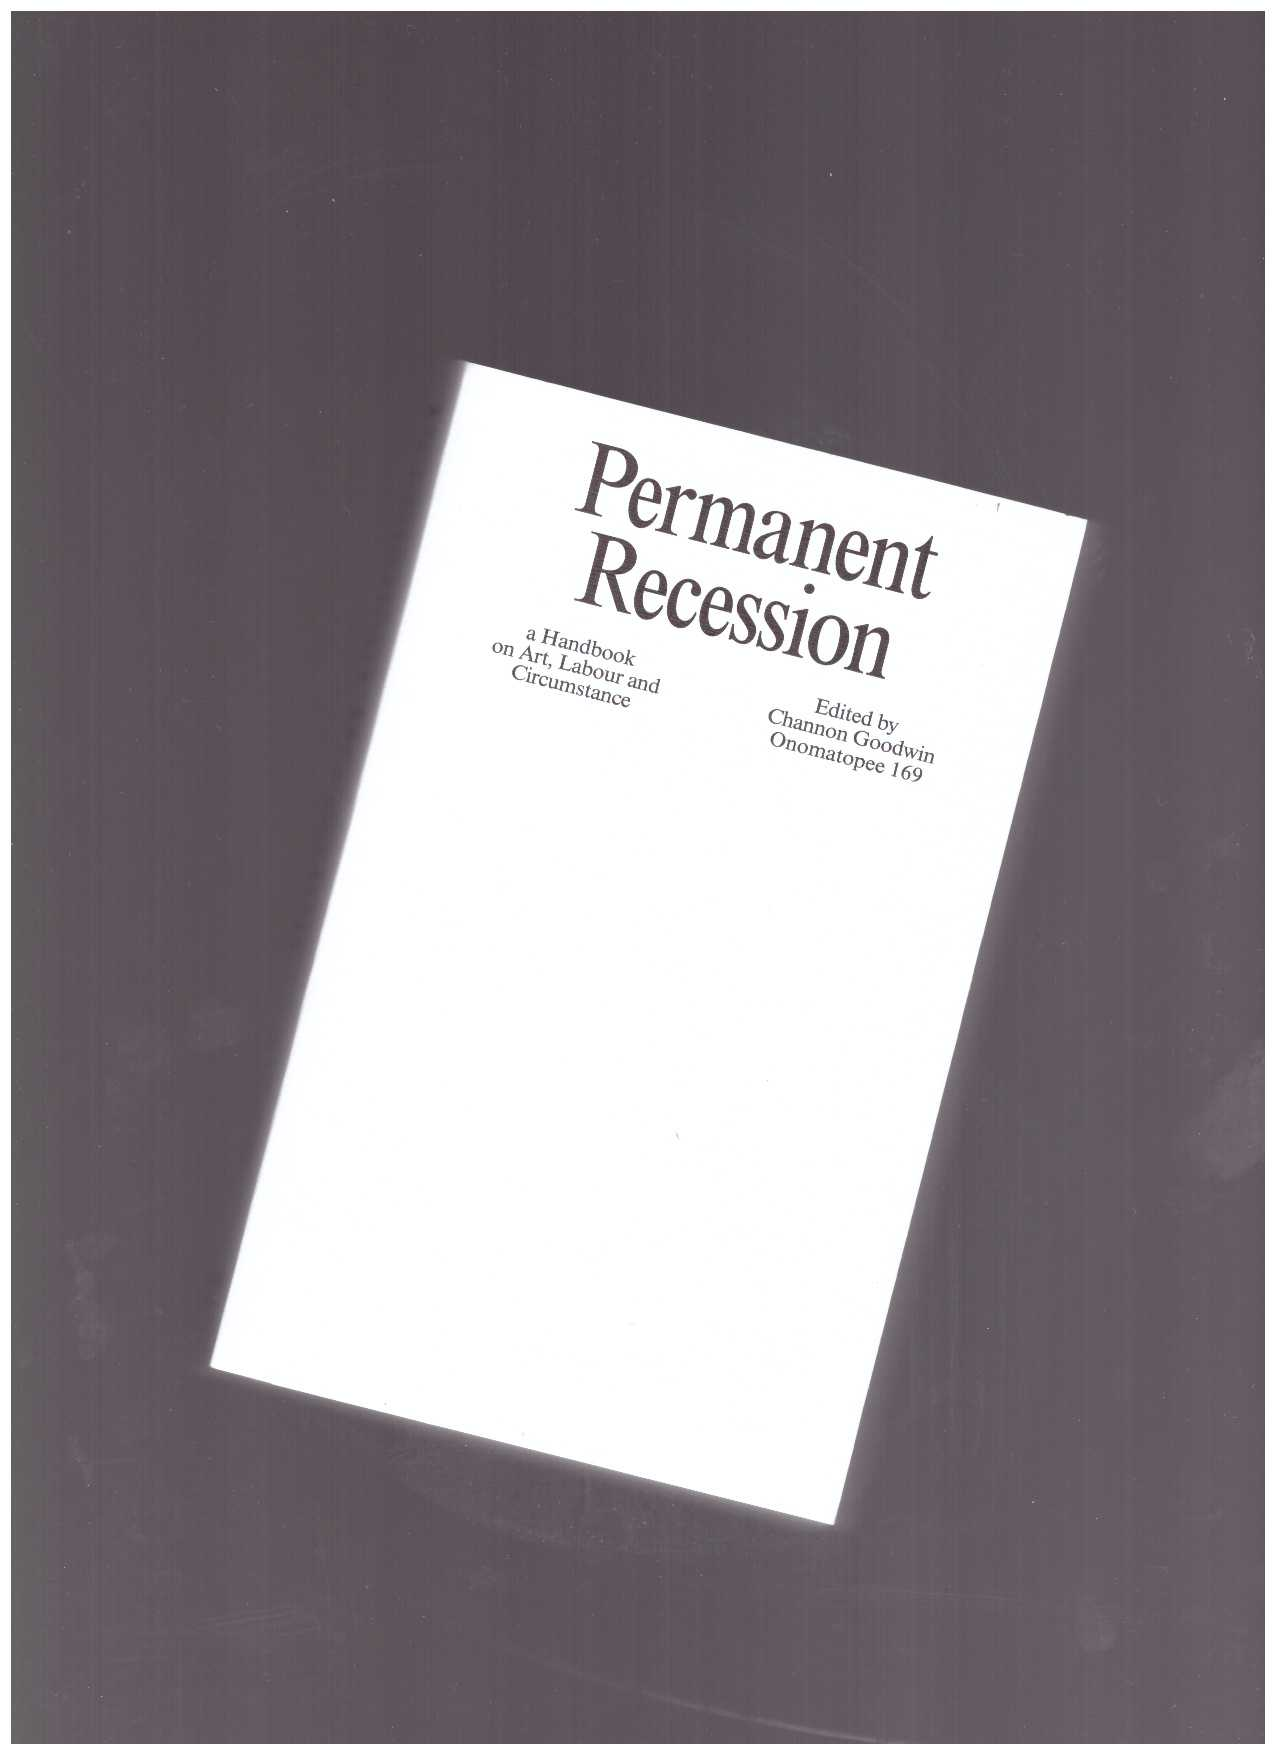 GOODWIN, Channon (ed.) - Permanent Recession: a Handbook on Art, Labour and Circumstance